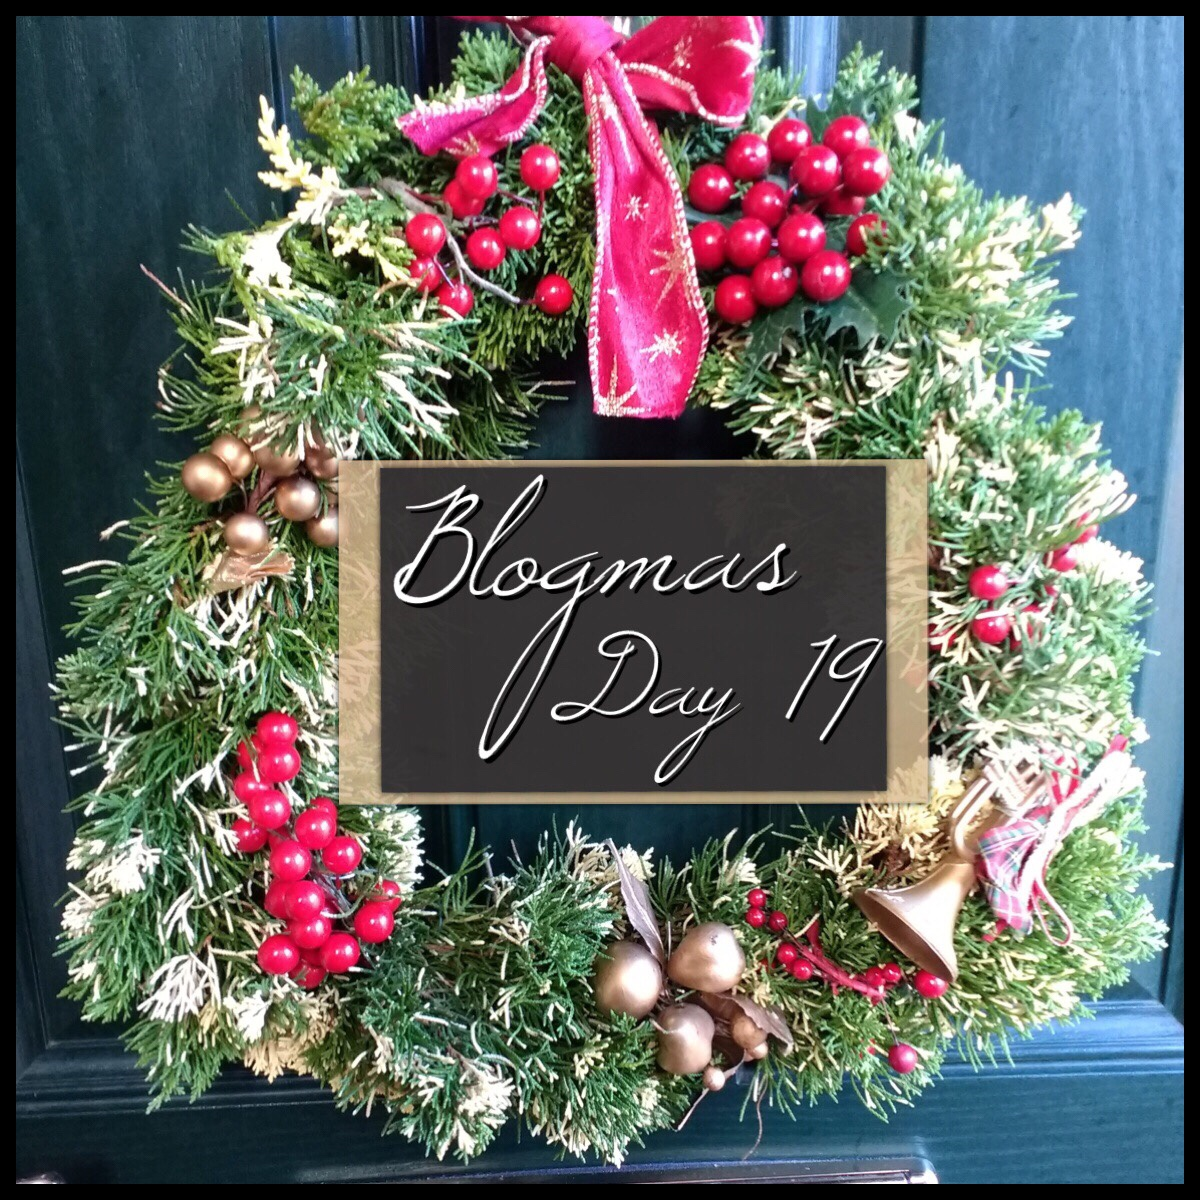 The Blogmas title image. It has a homemade wreath hanging on a door.